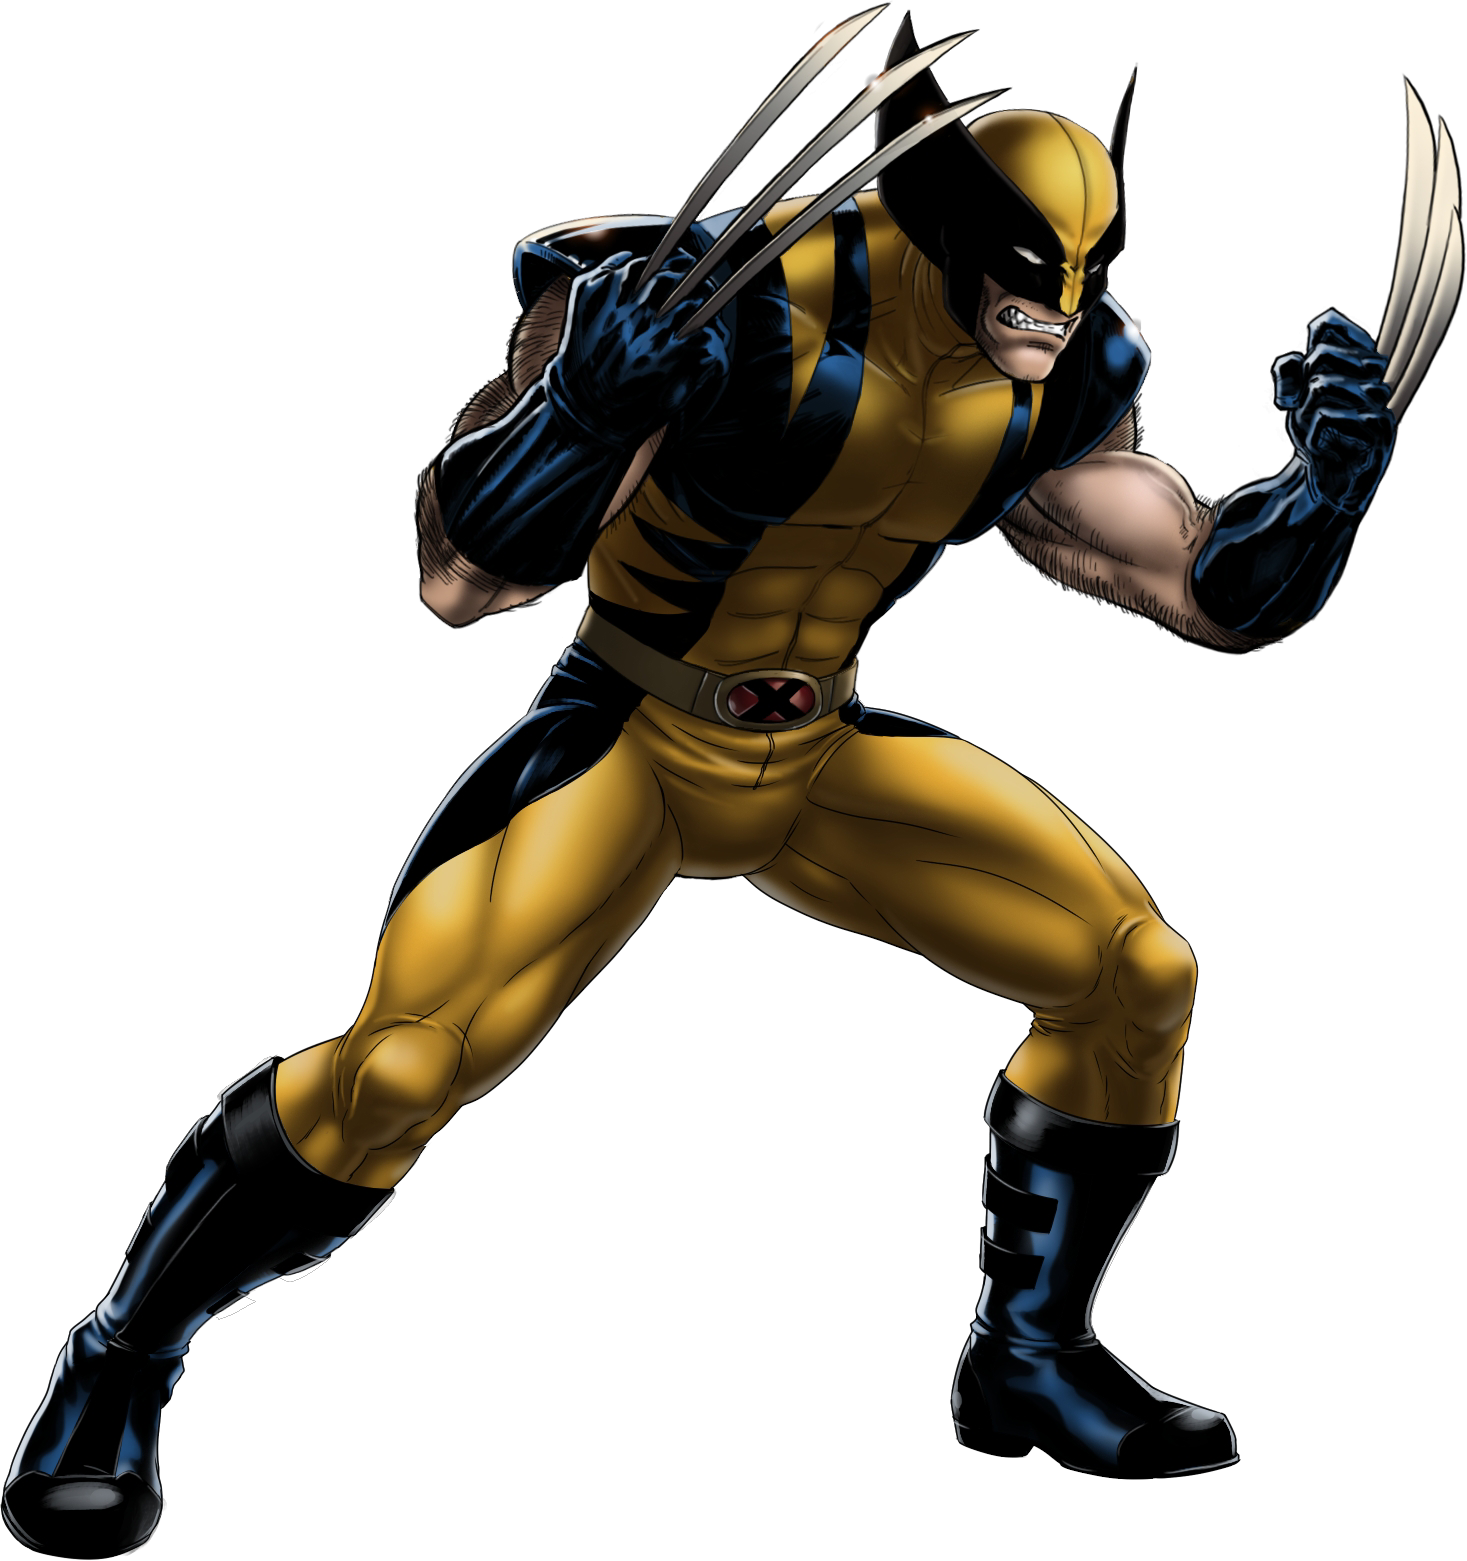 Thor Ultimate Avengers Marvel Movies Wiki Wolverine